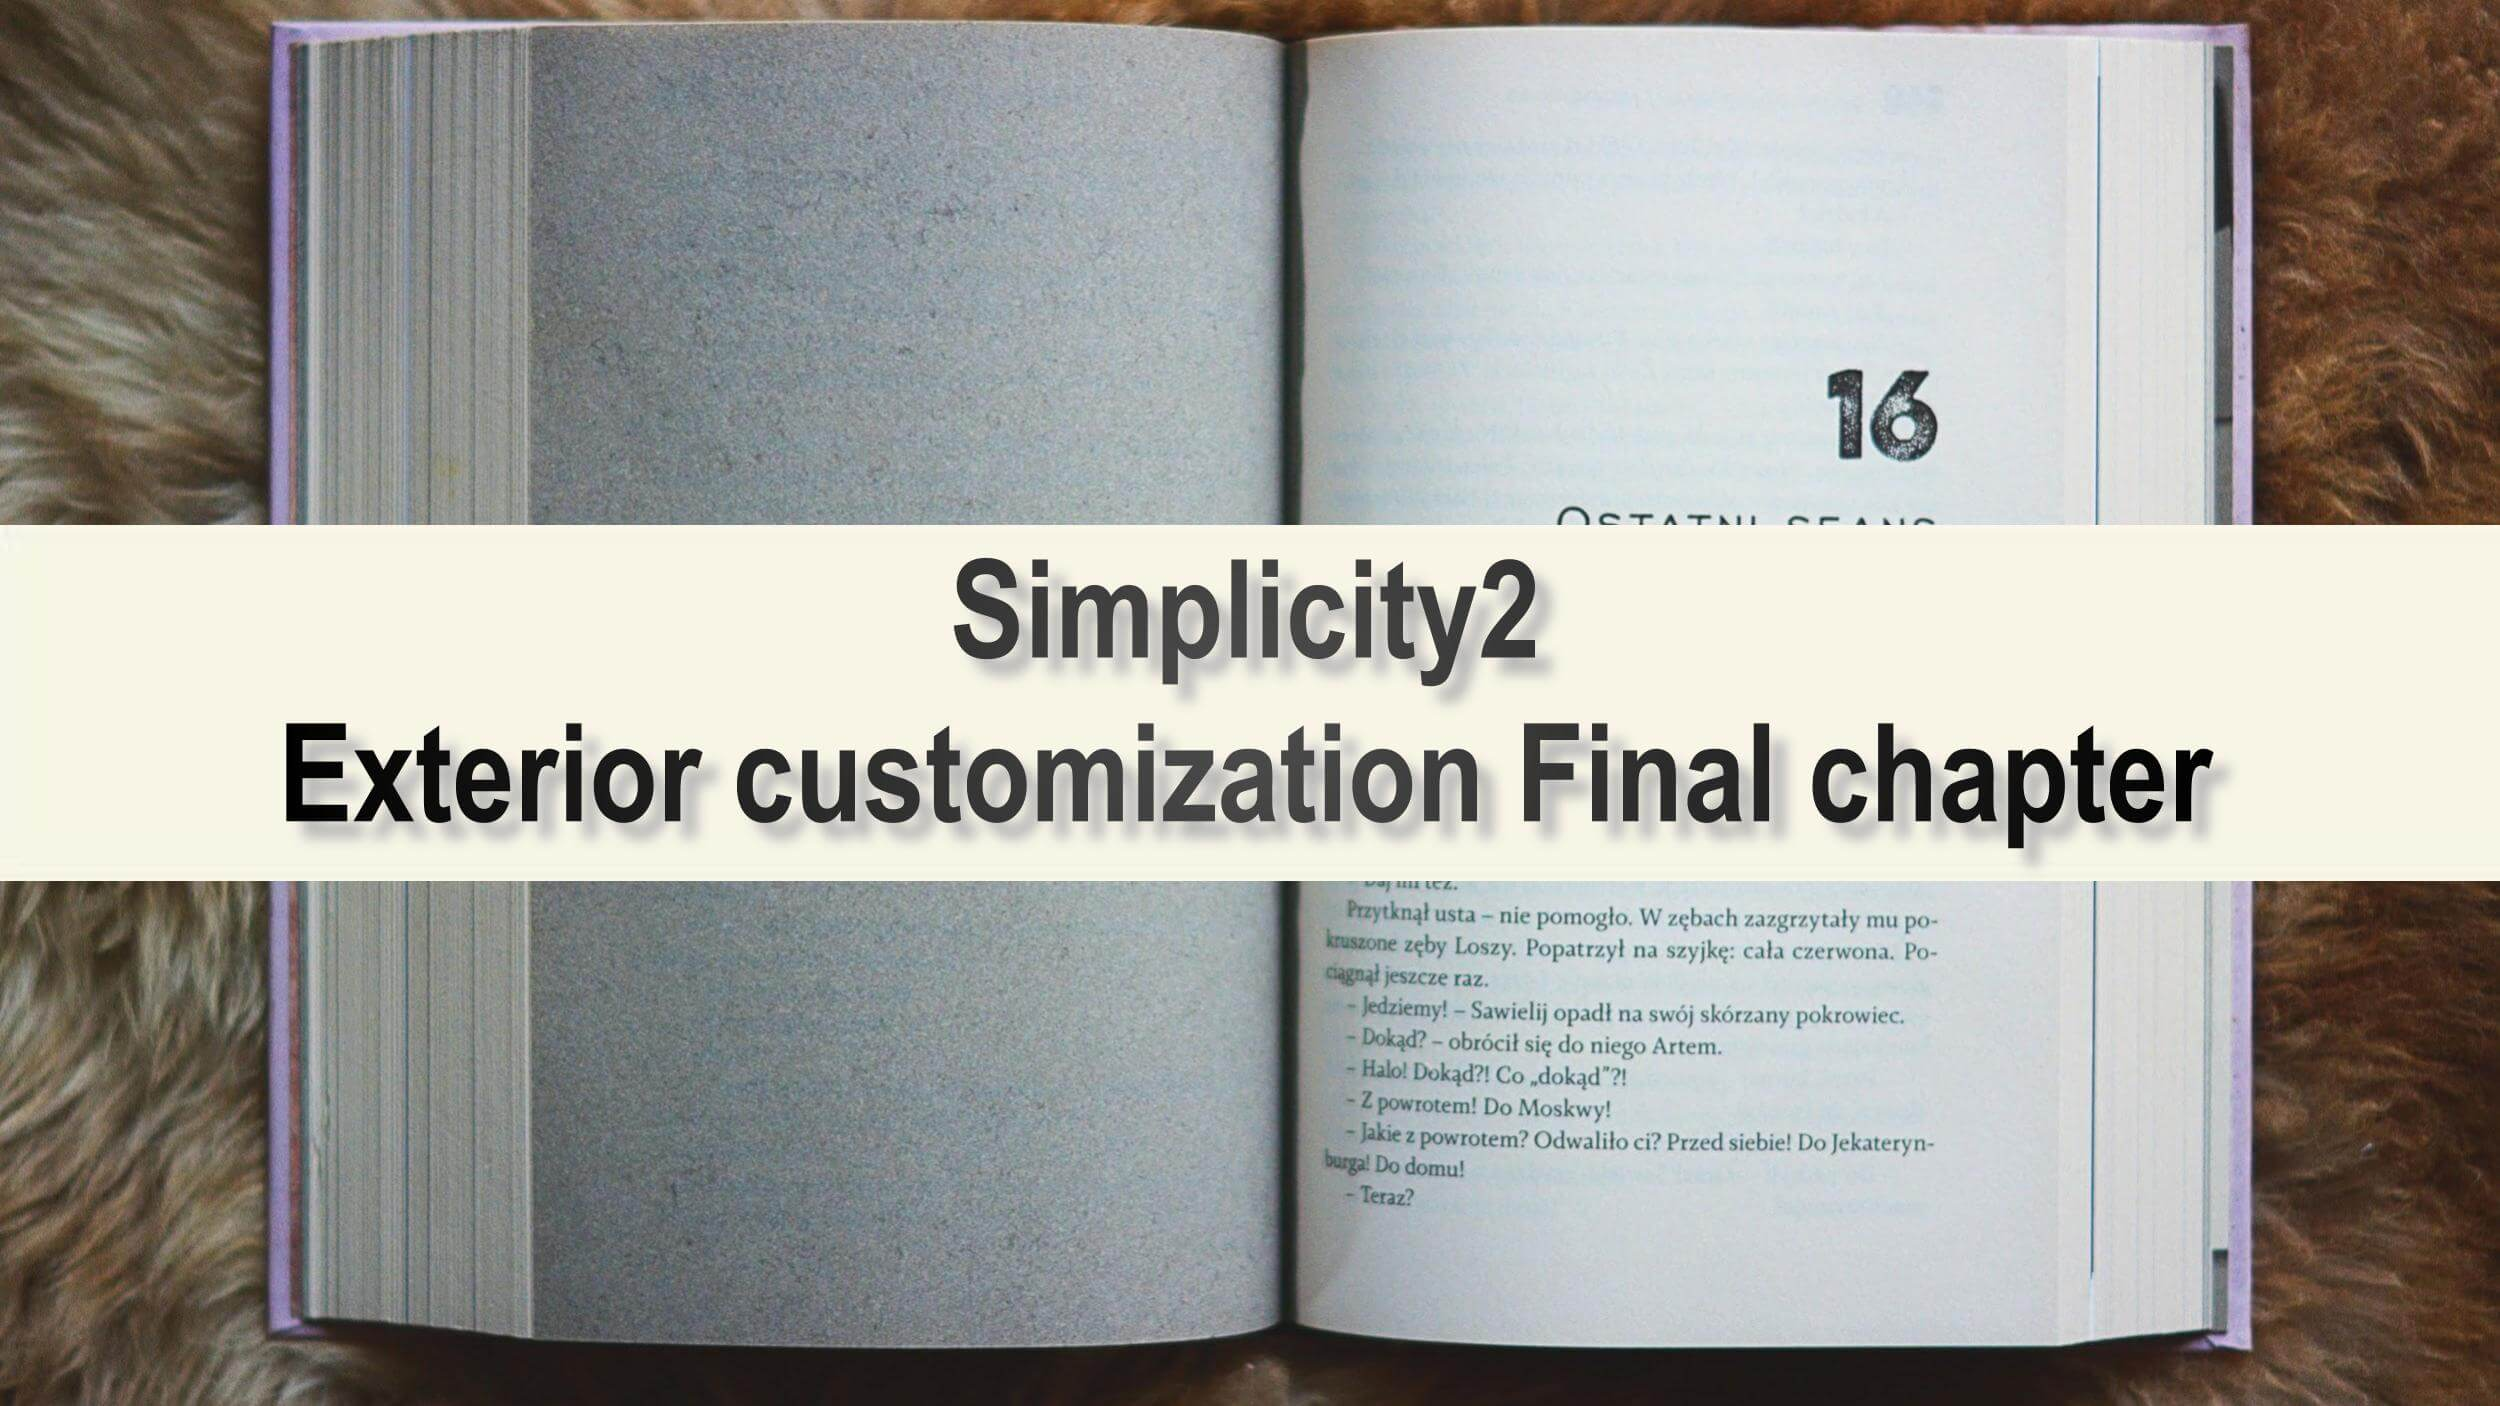 小説後半 テキスト「Simplicity2 Exterior customization Final chapter」